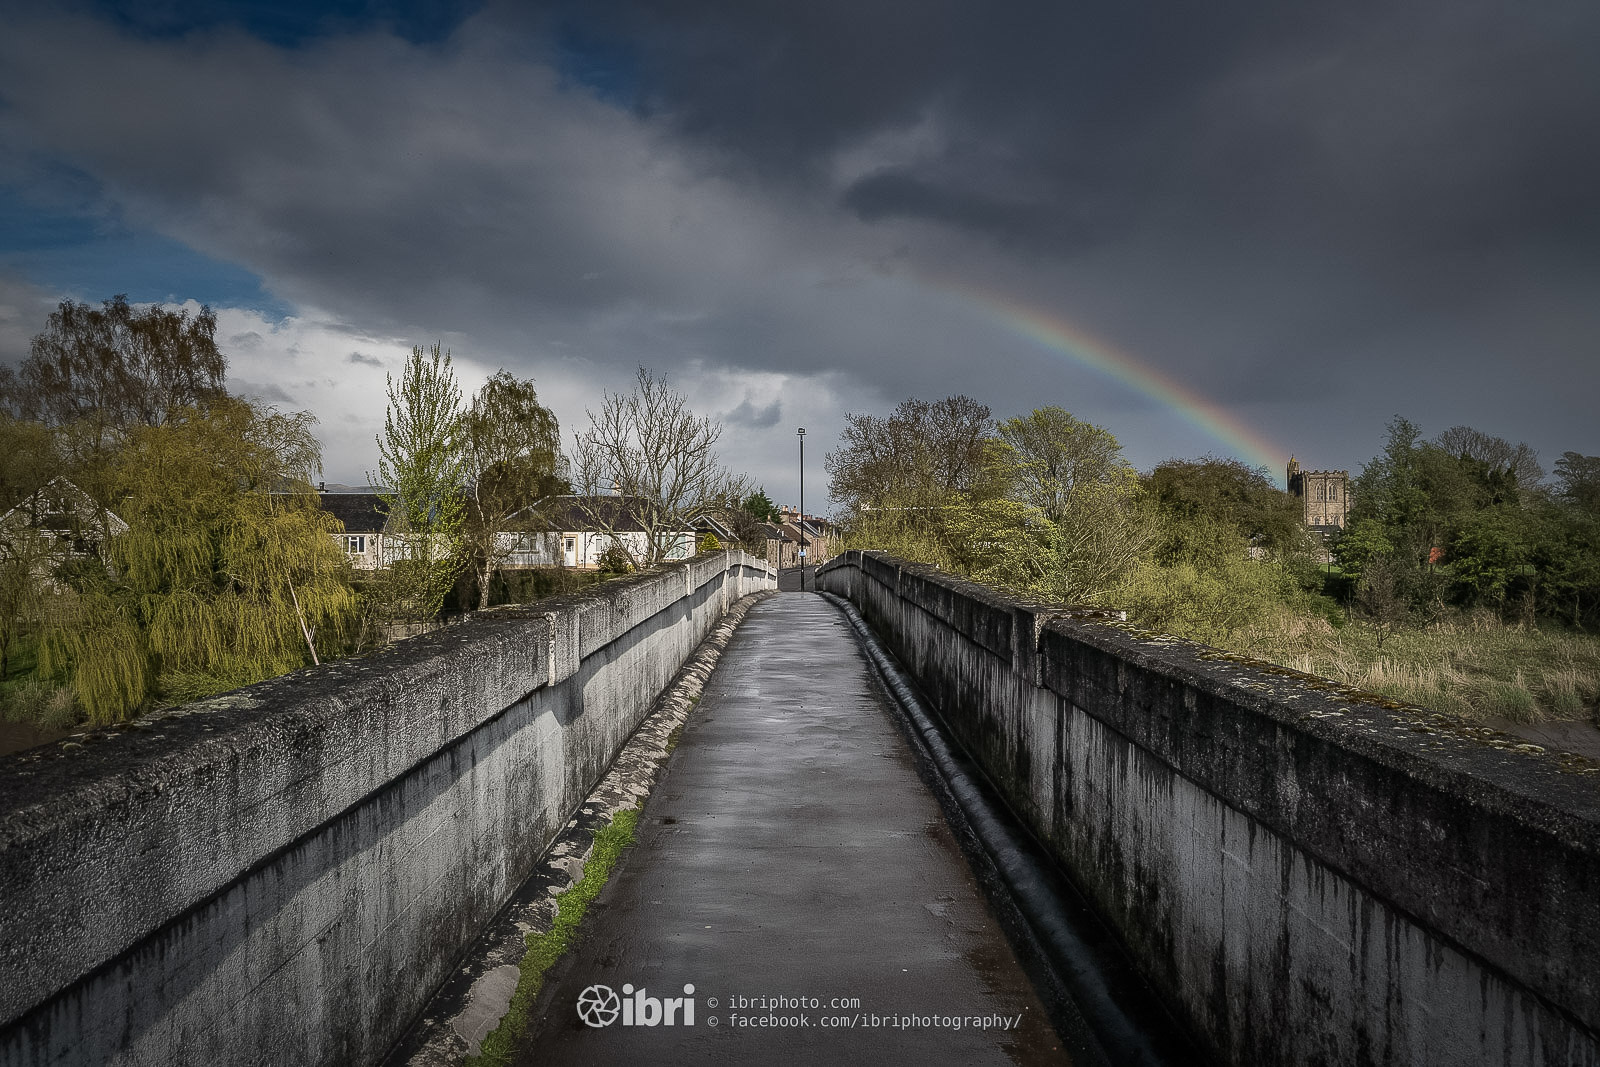 More April showers. Crossing the River Forth at Cambuskenneth as a rainbow arches to the Abbey.